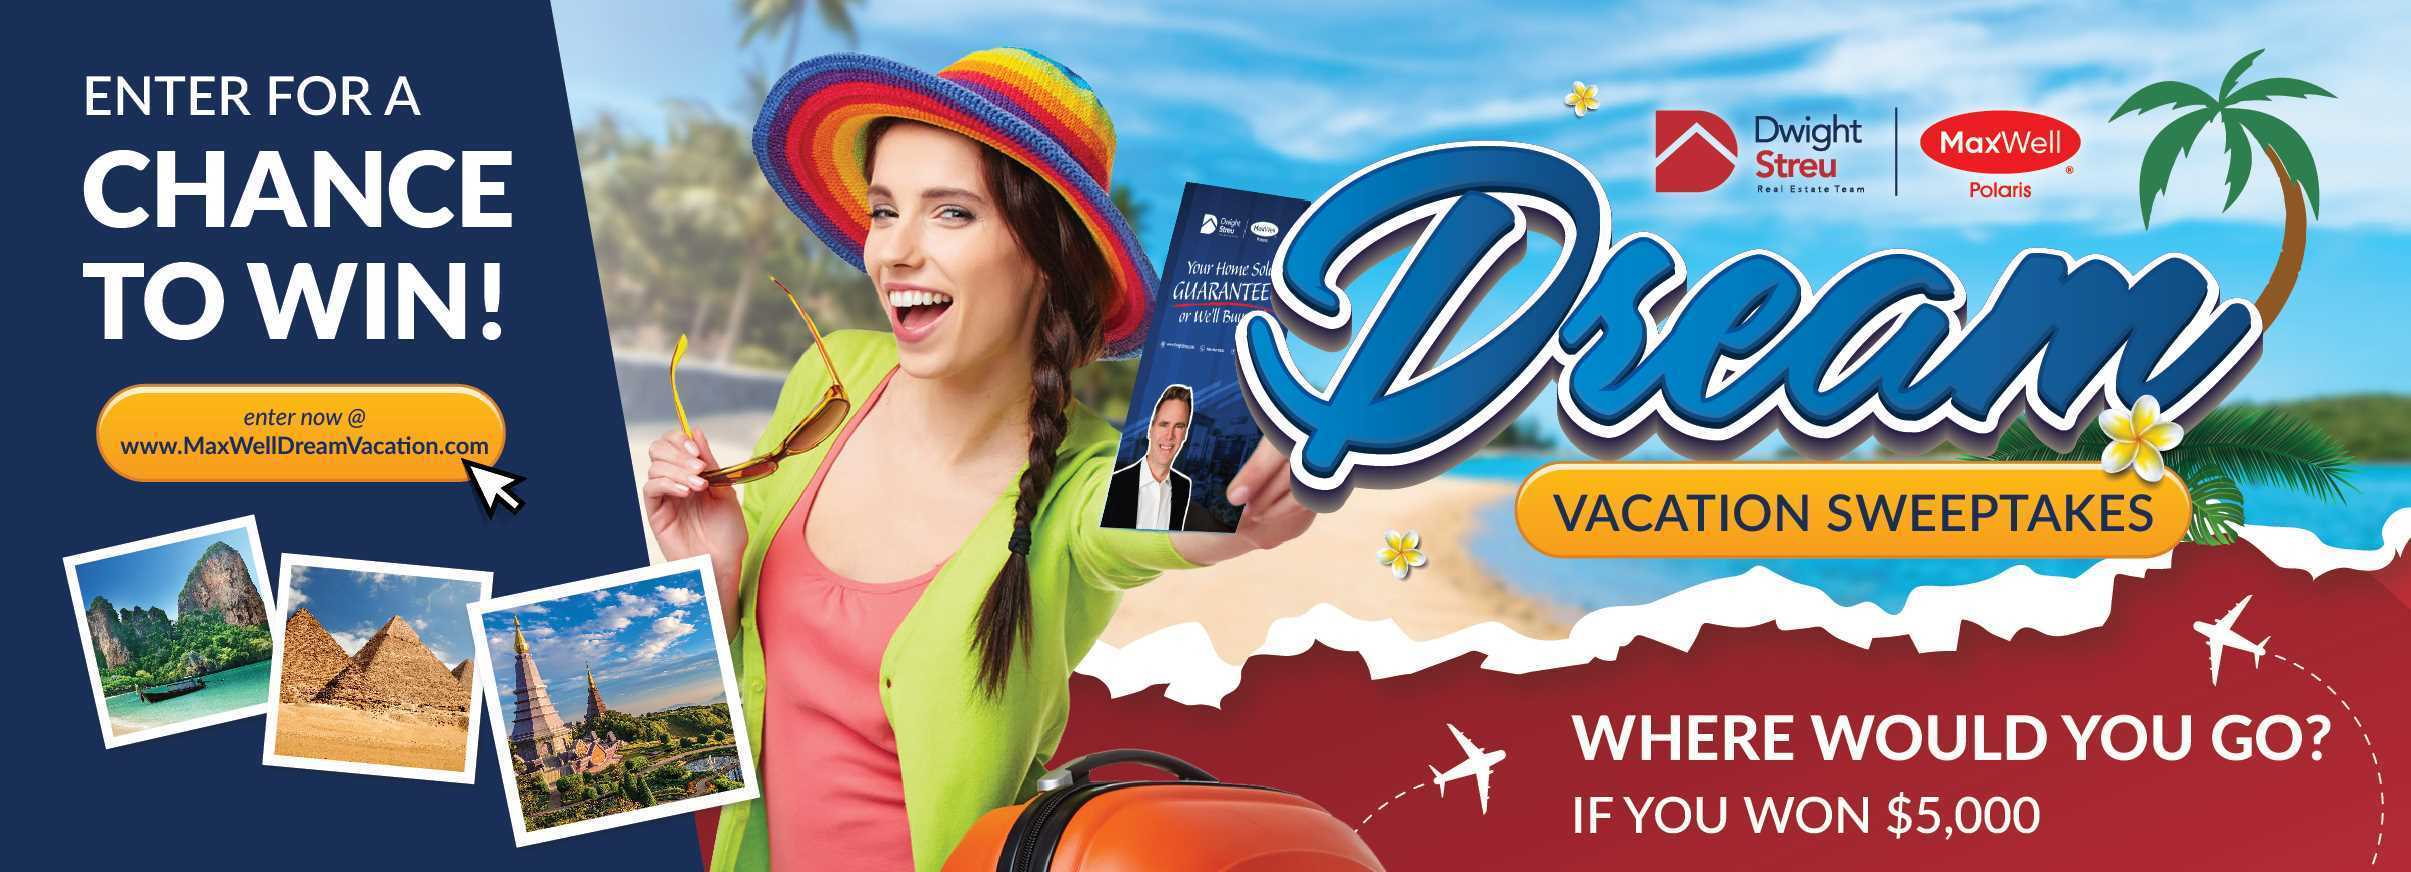 Have You Entered to Win? MaxWell Realty Dream Vacation Sweepstakes | Edmonton Realtor Blog | Dwight Streu